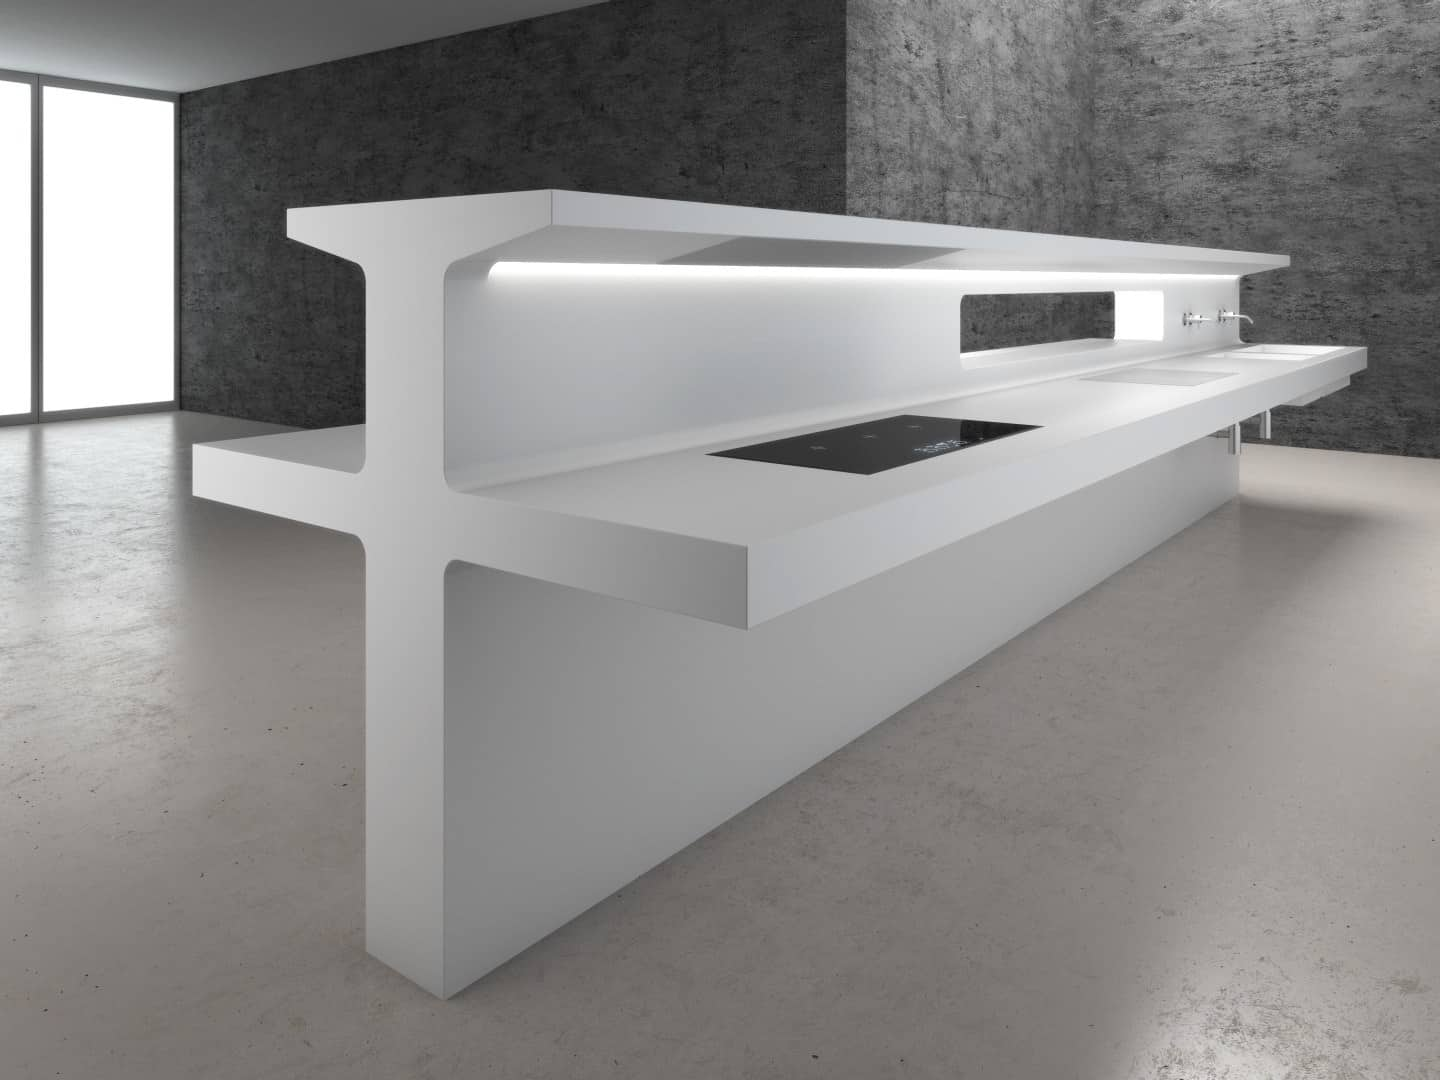 Futuristic Wall Mounted Kitchen By Antonio Lupi LaCucina